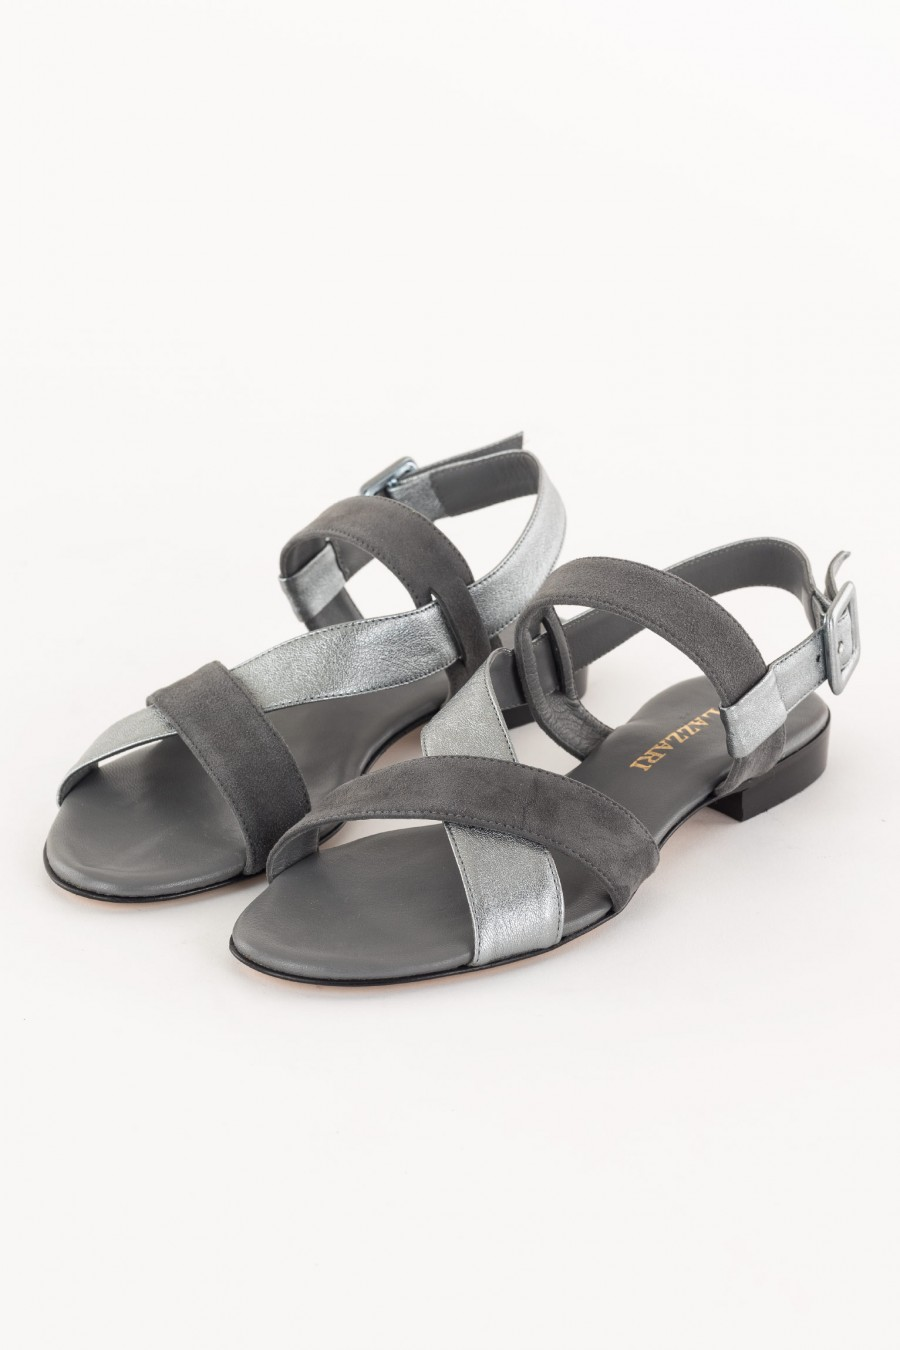 Silver and grey sandal